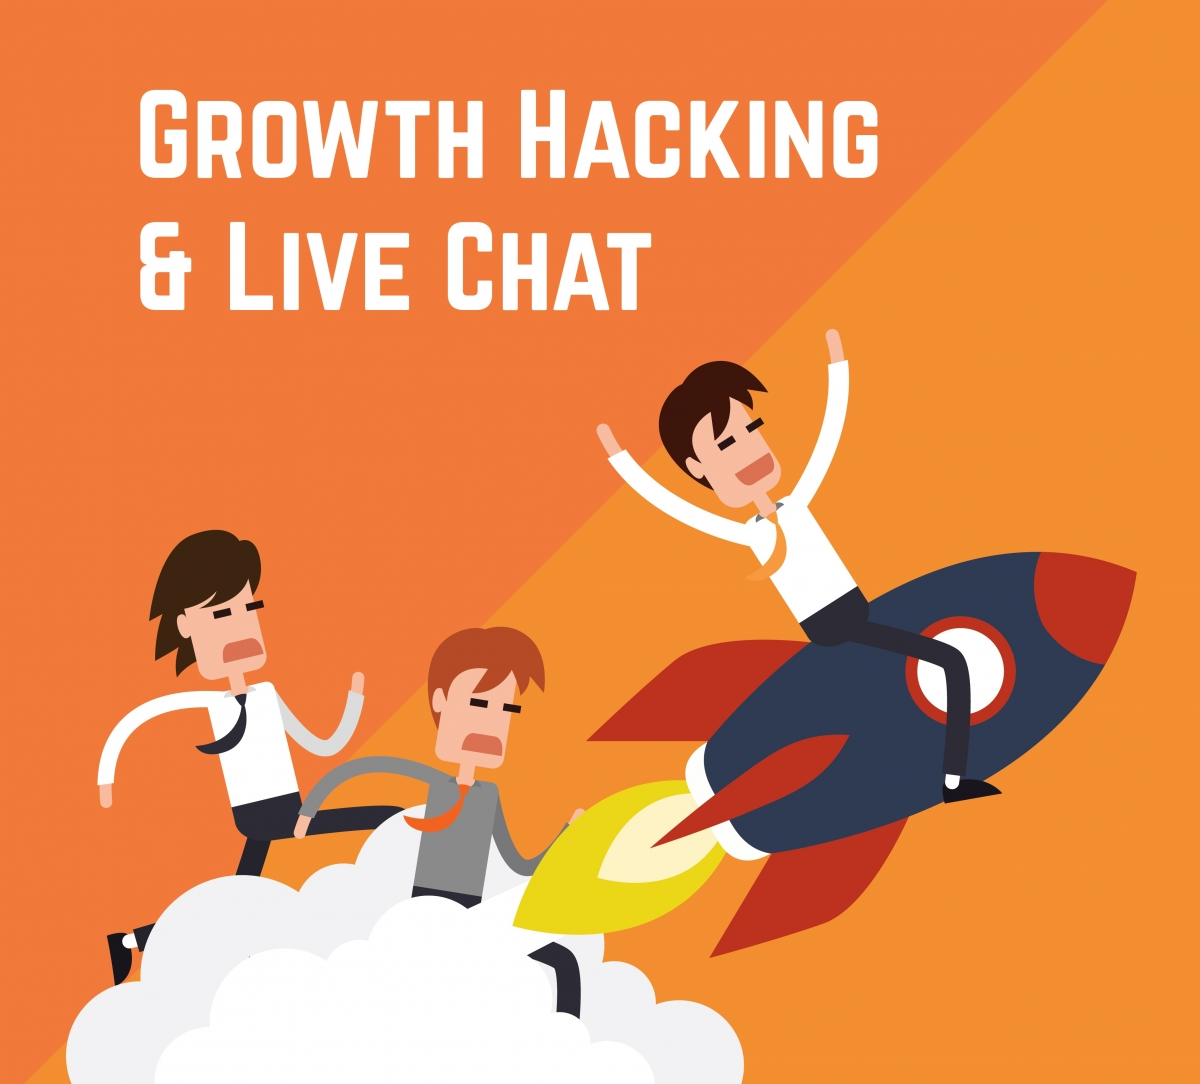 Live Chat is Your New Growth Hack